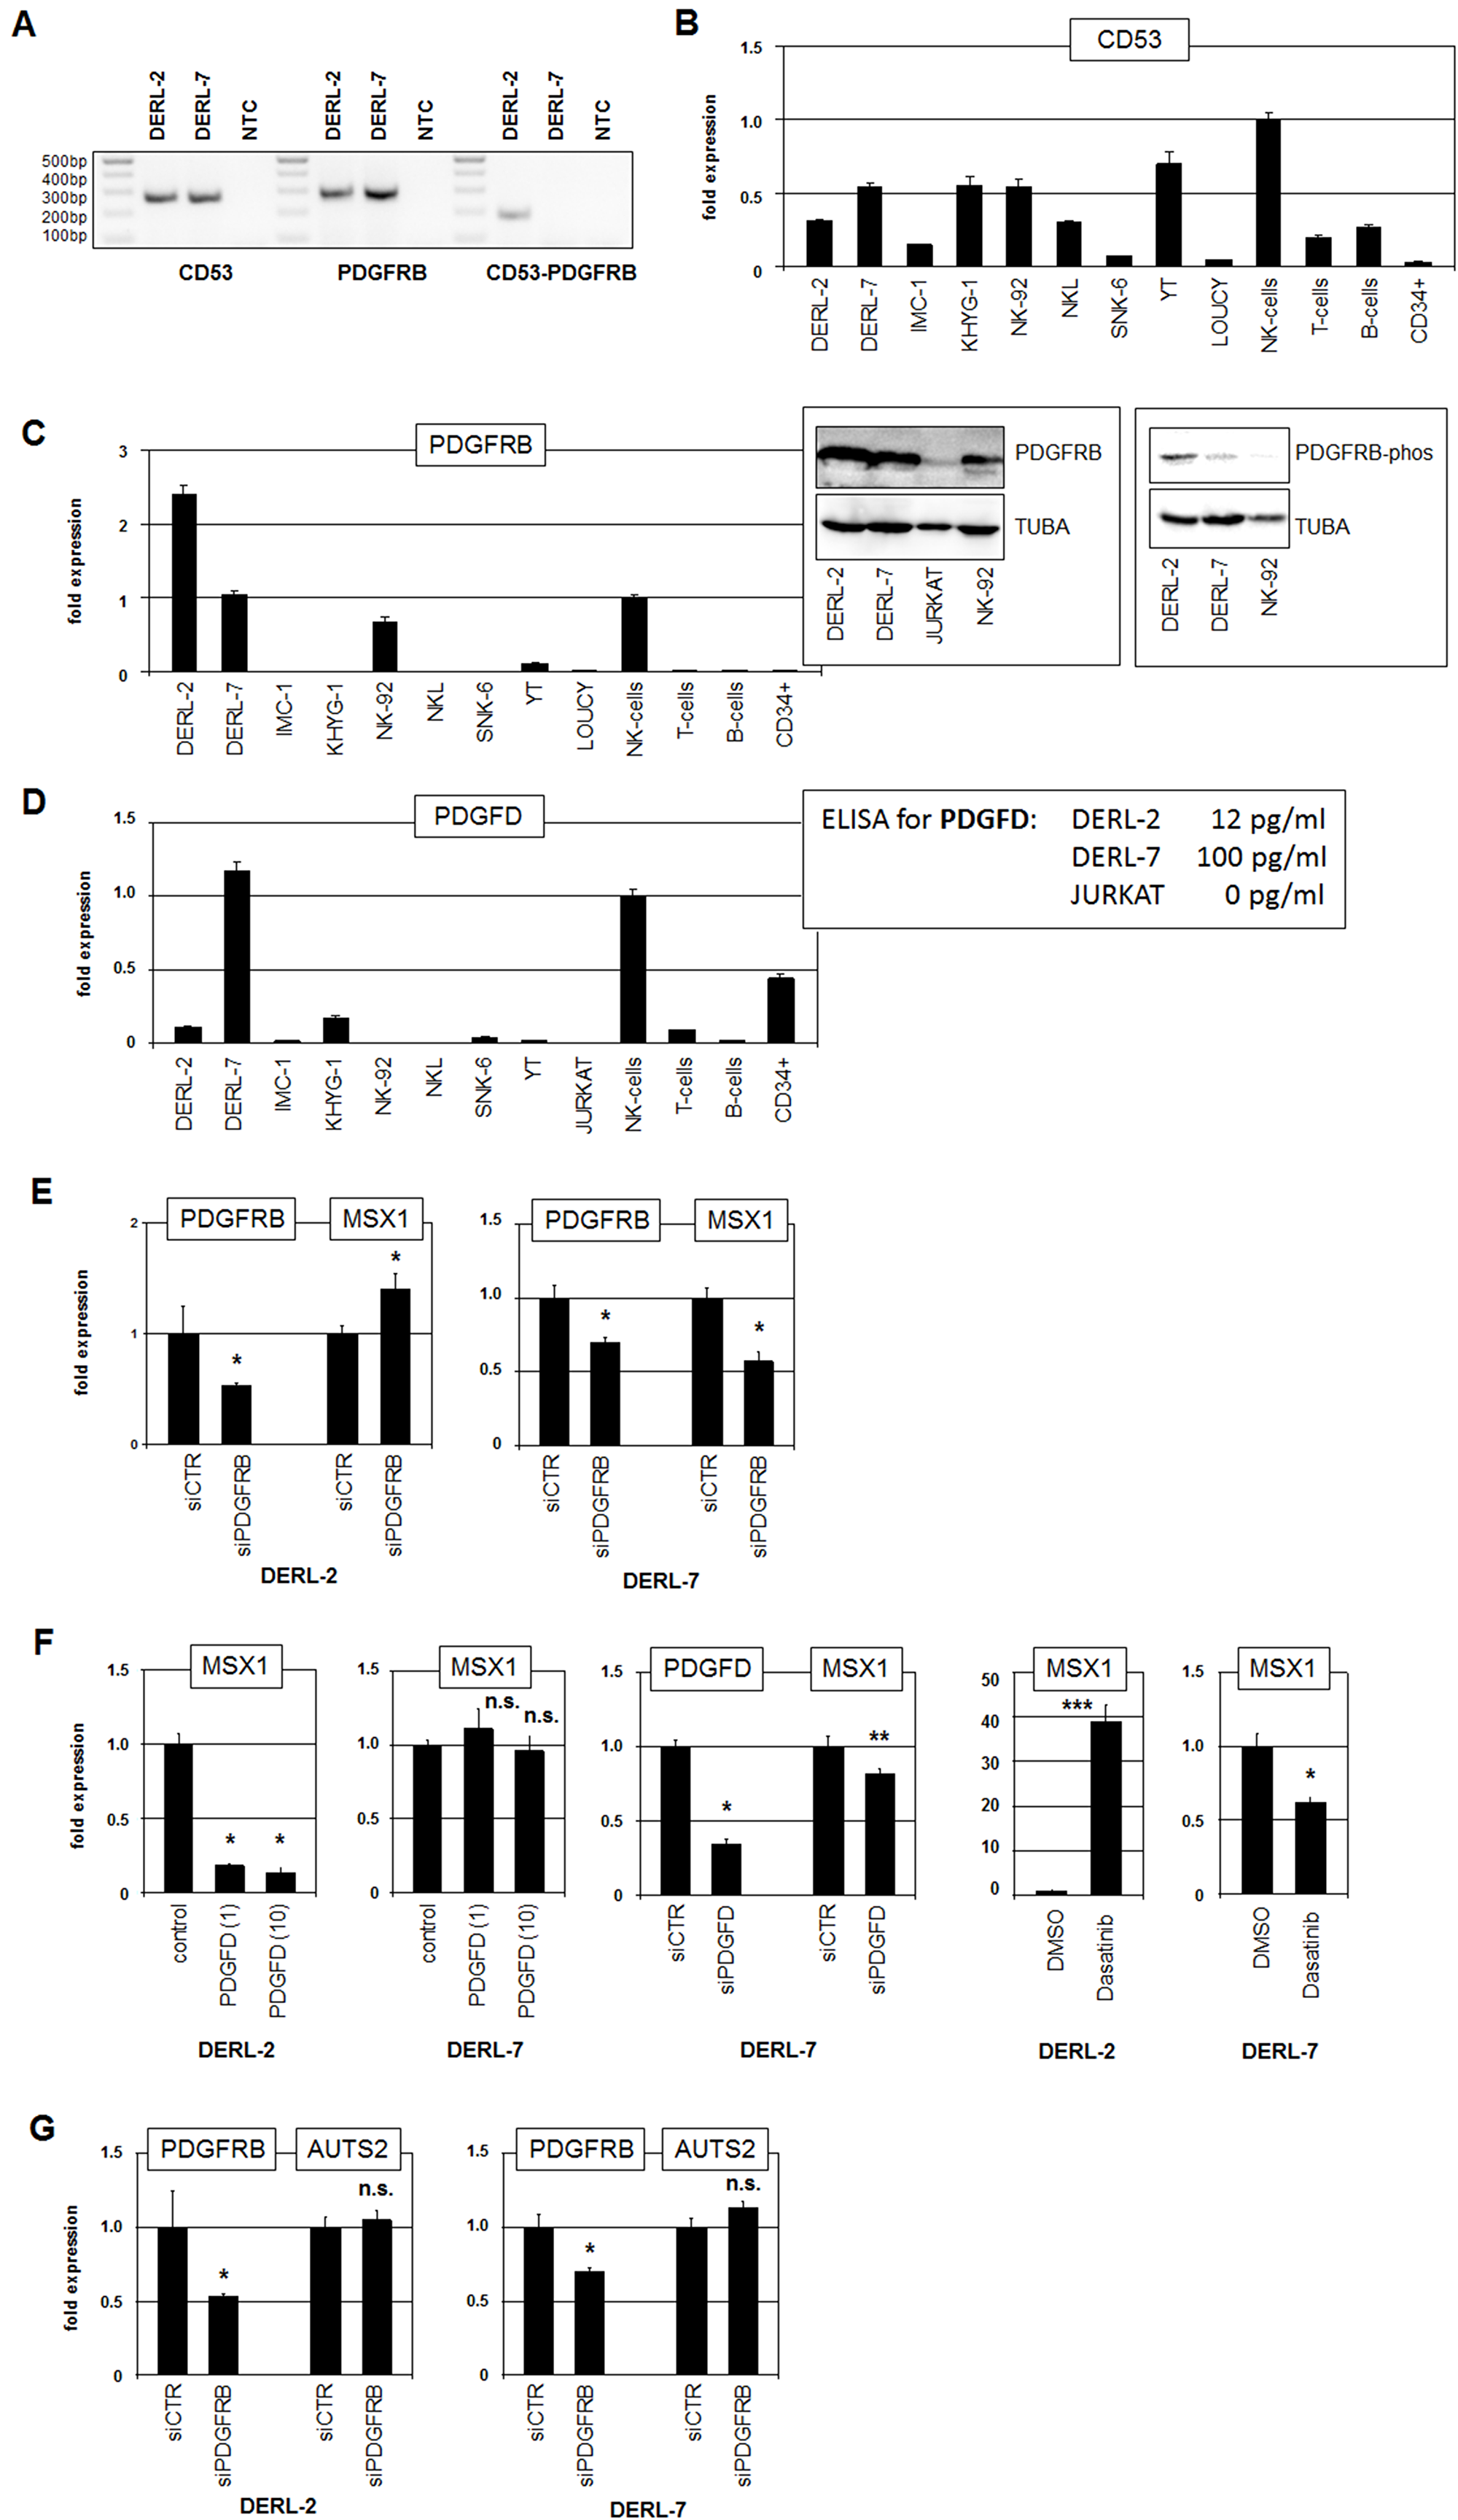 Analyses of fusion gene CD53-PDGFRB.